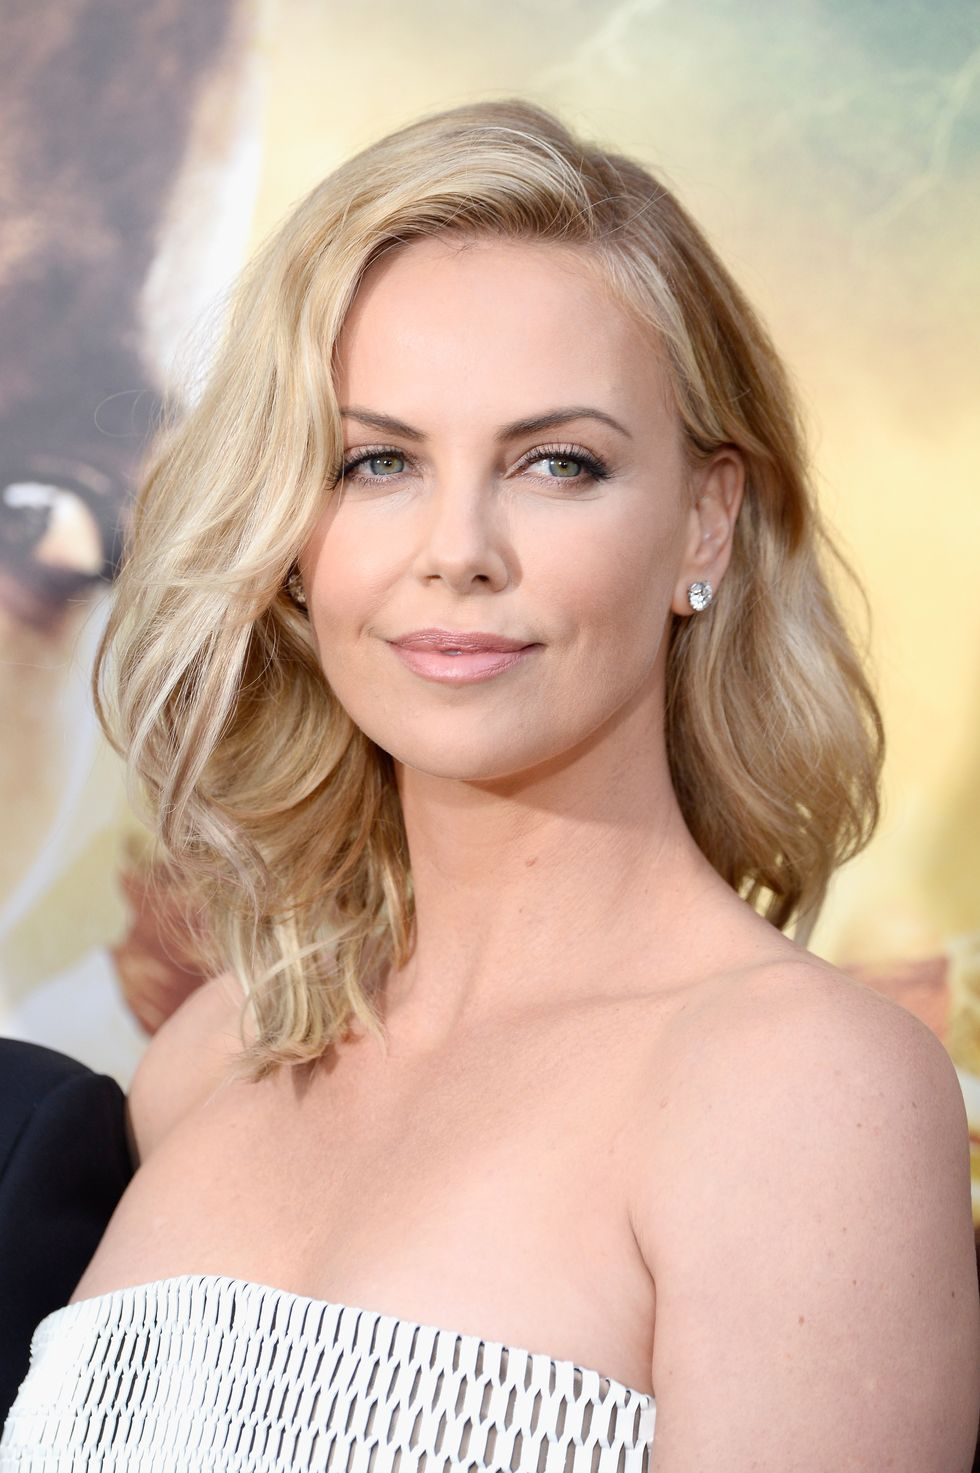 actress-charlize-theron-attends-the-premiere-of-warner-bros-news-photo-1583855260